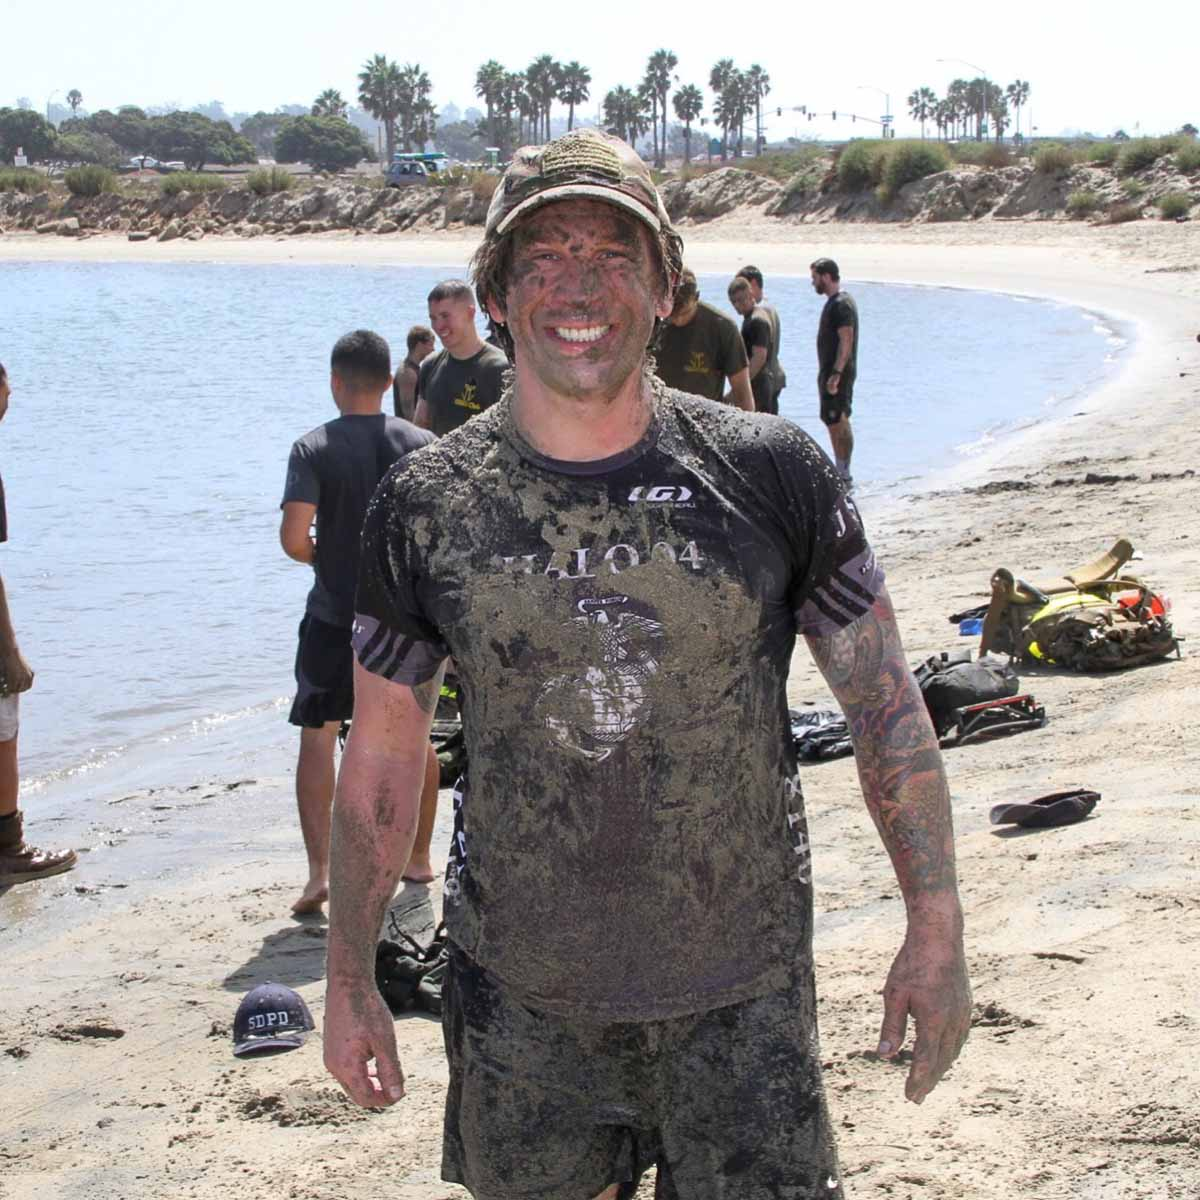 with Derek Abbey, Ph.D. man on beach covered in mud from running